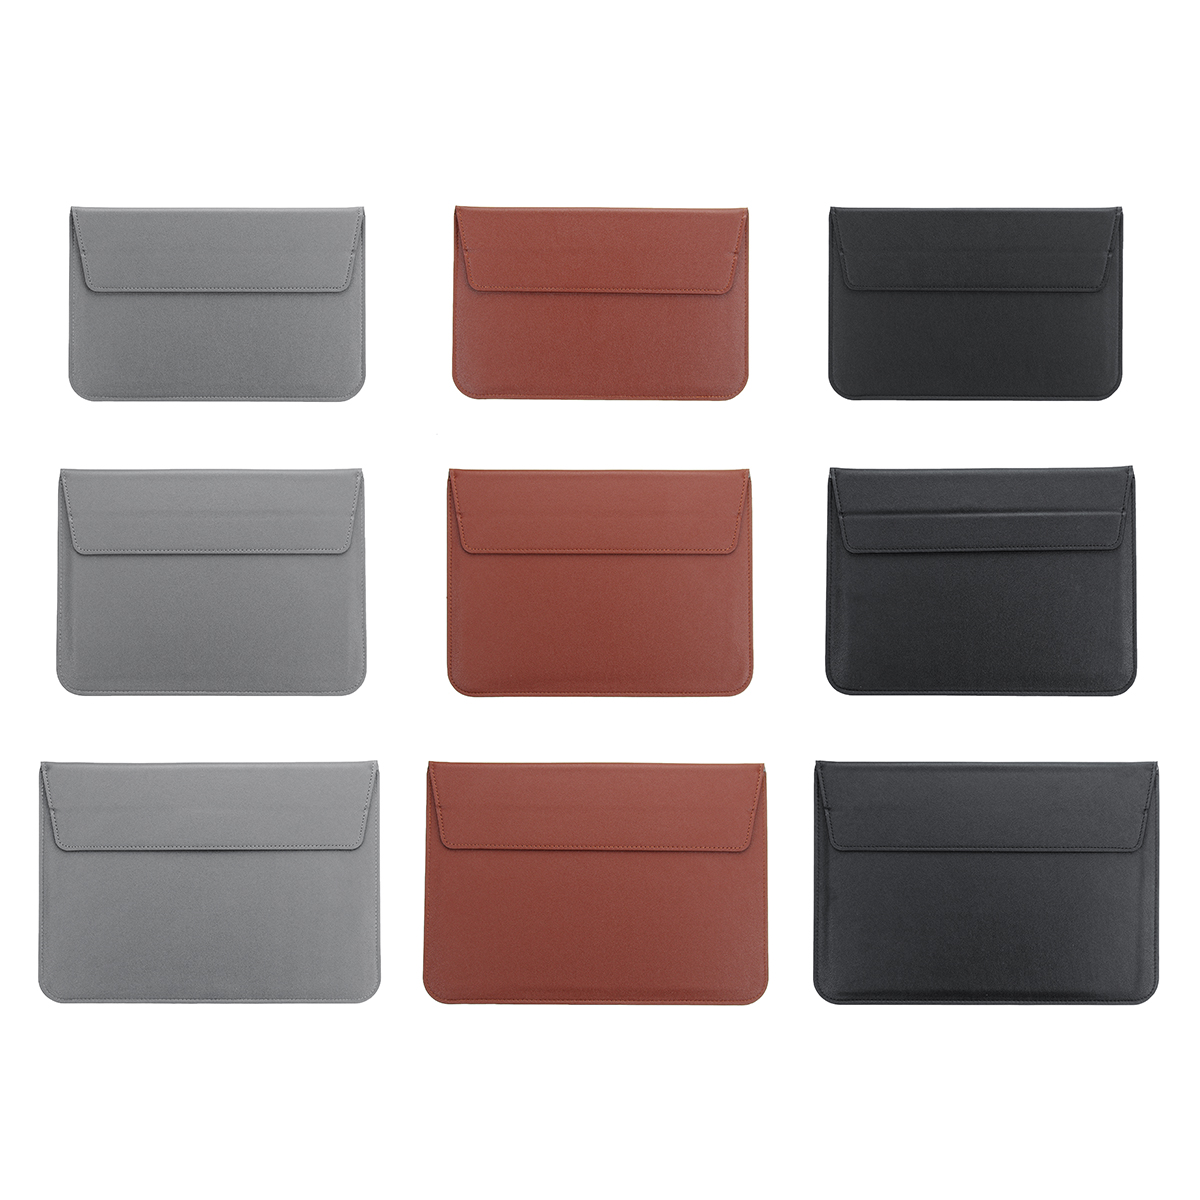 3 Color Leather Sleeve Case Laptop Bag Tablet Bag With Stand Holder For 12/13.3/15.4 Lap ...